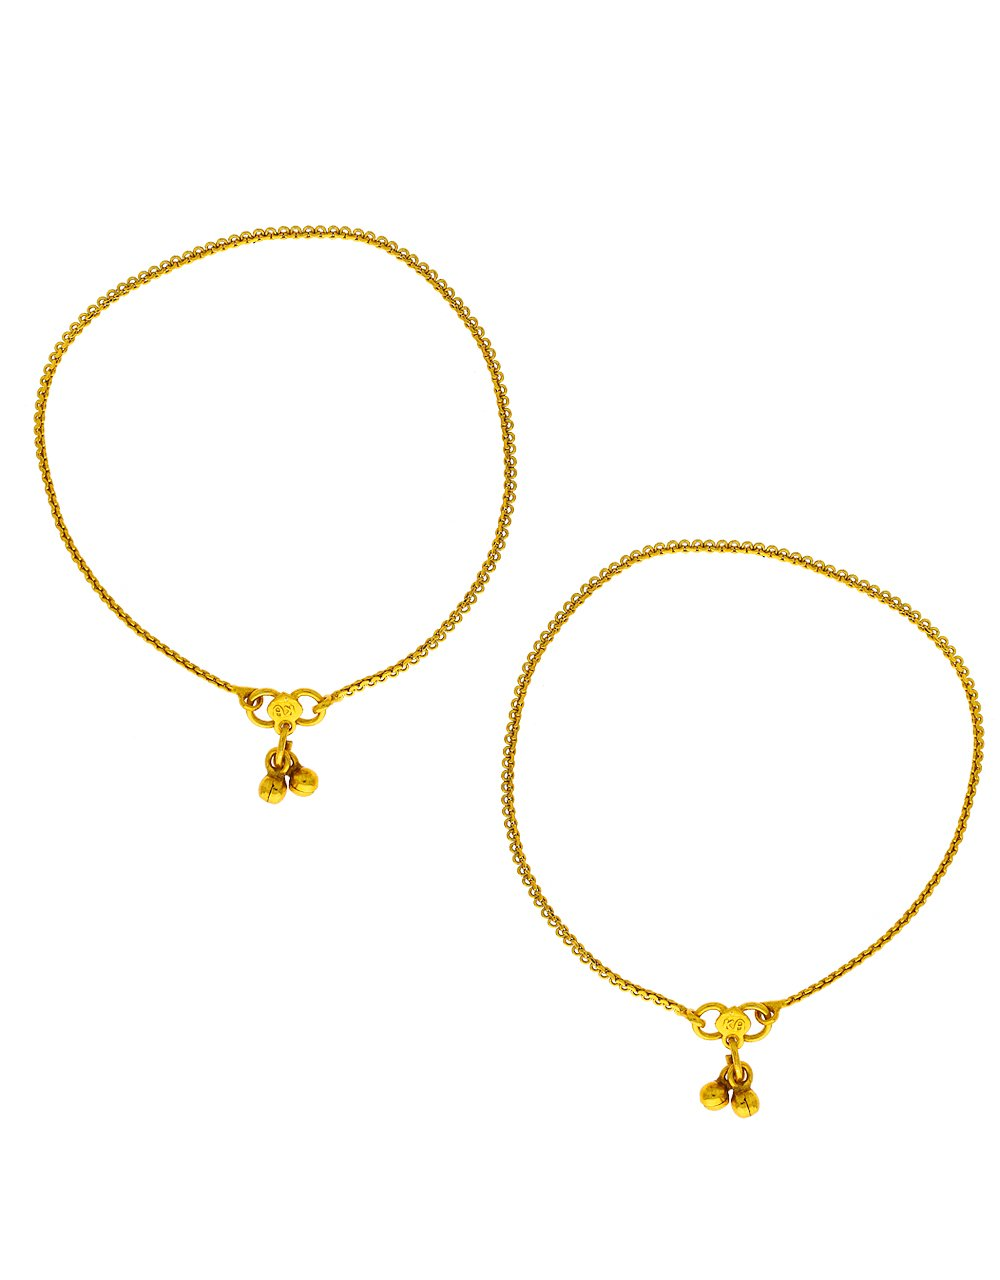 Anuradha Art Presenting Gold Finish Stylish Traditional Payal/Anklet for Women/Girls